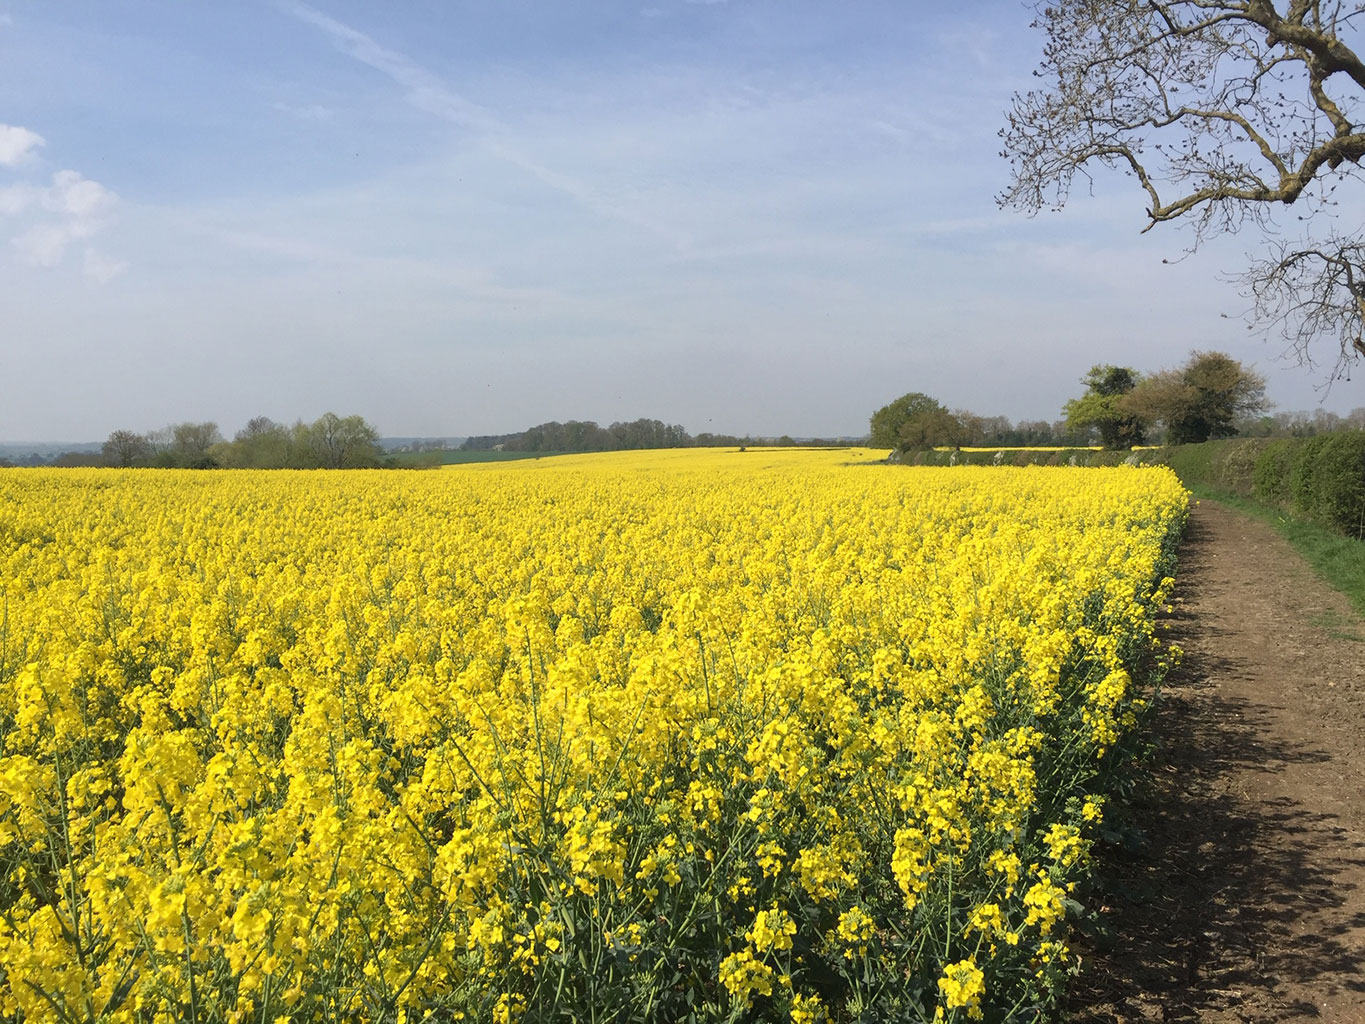 Sea of yellow under a blue sky